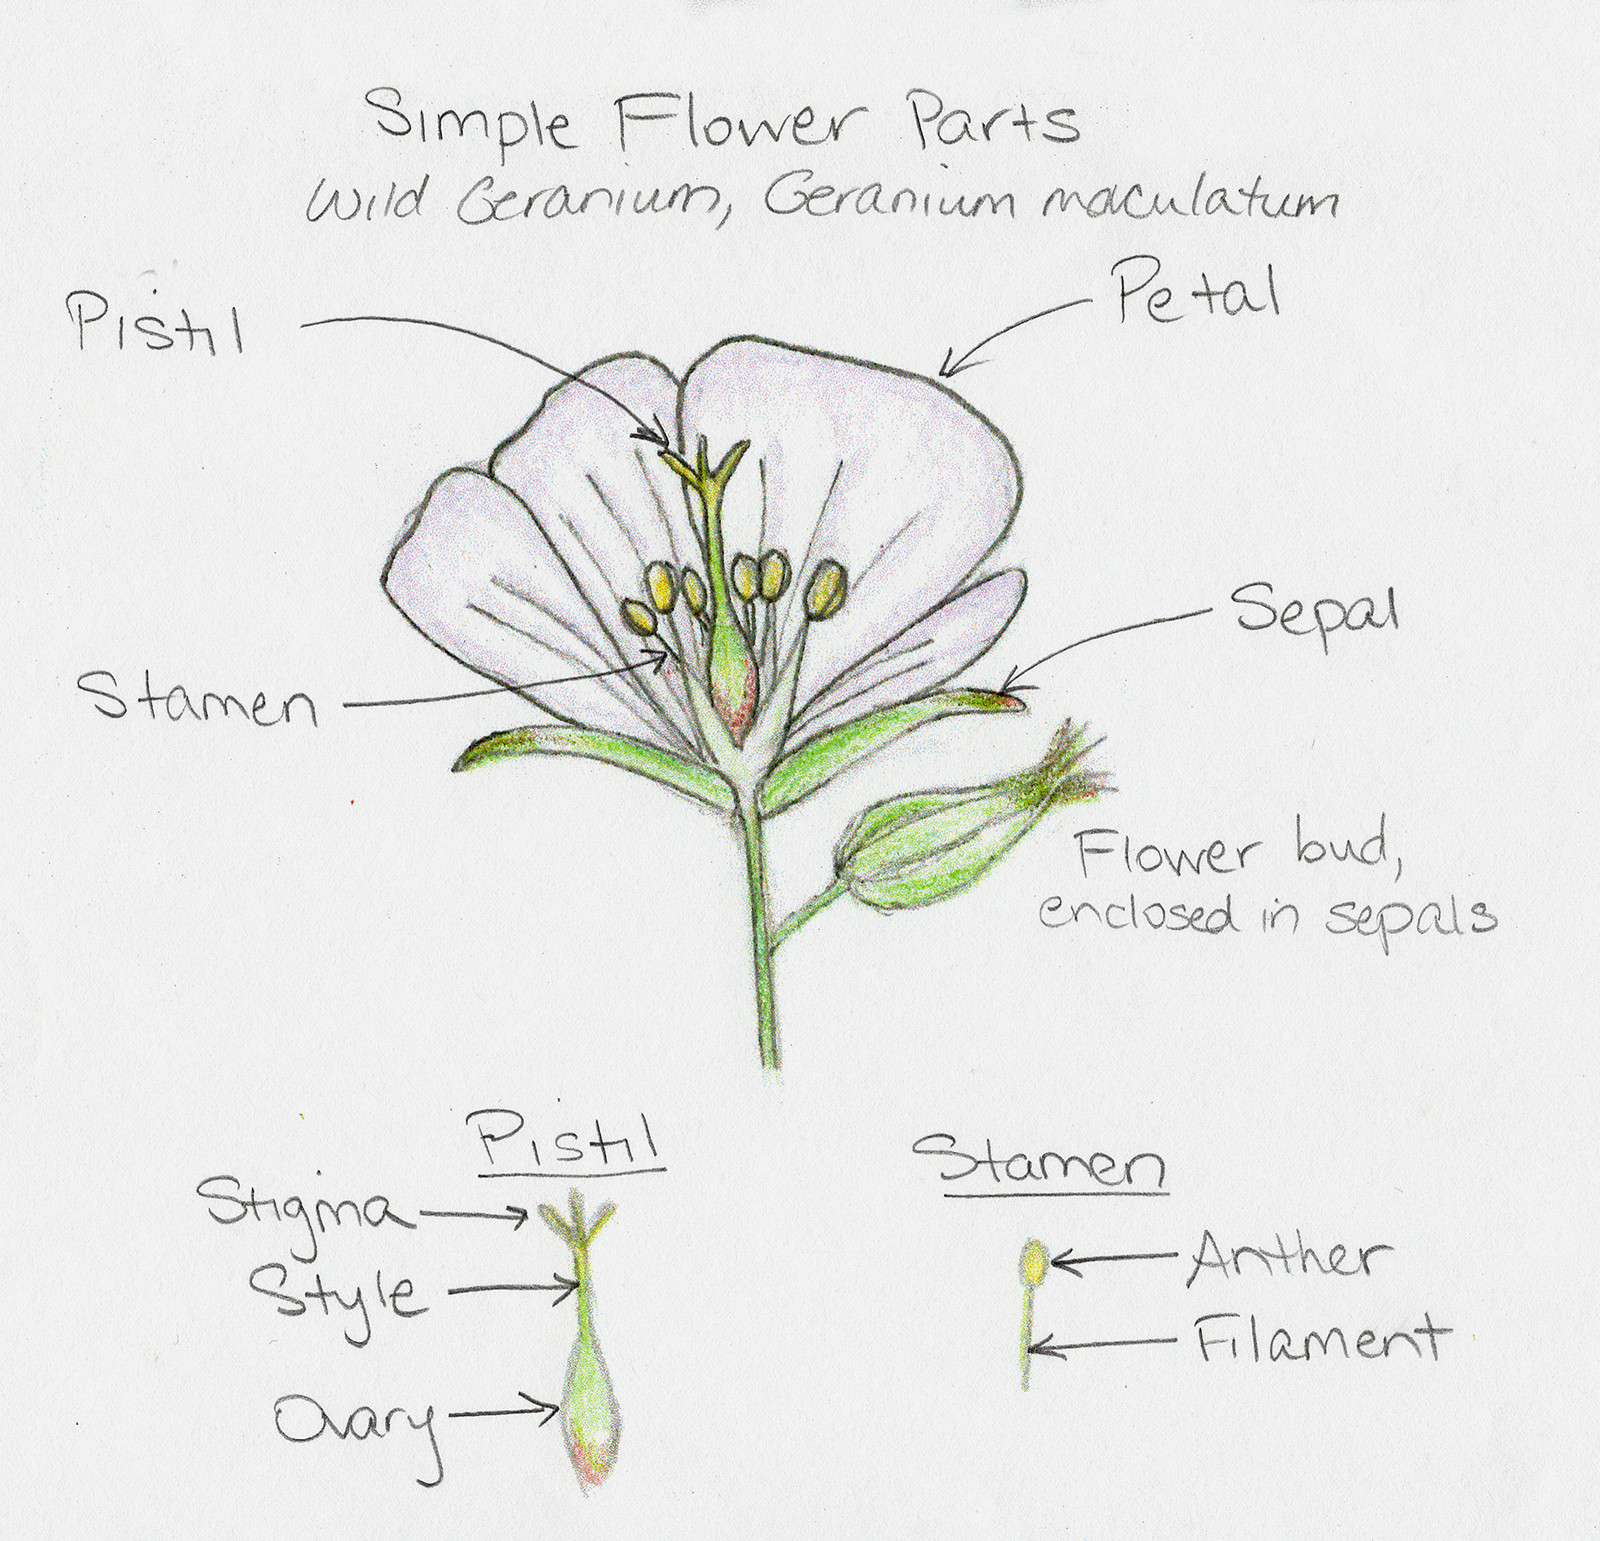 Sketch of wild geranium flower with sepals, petals, pistil, and stamens labeled.